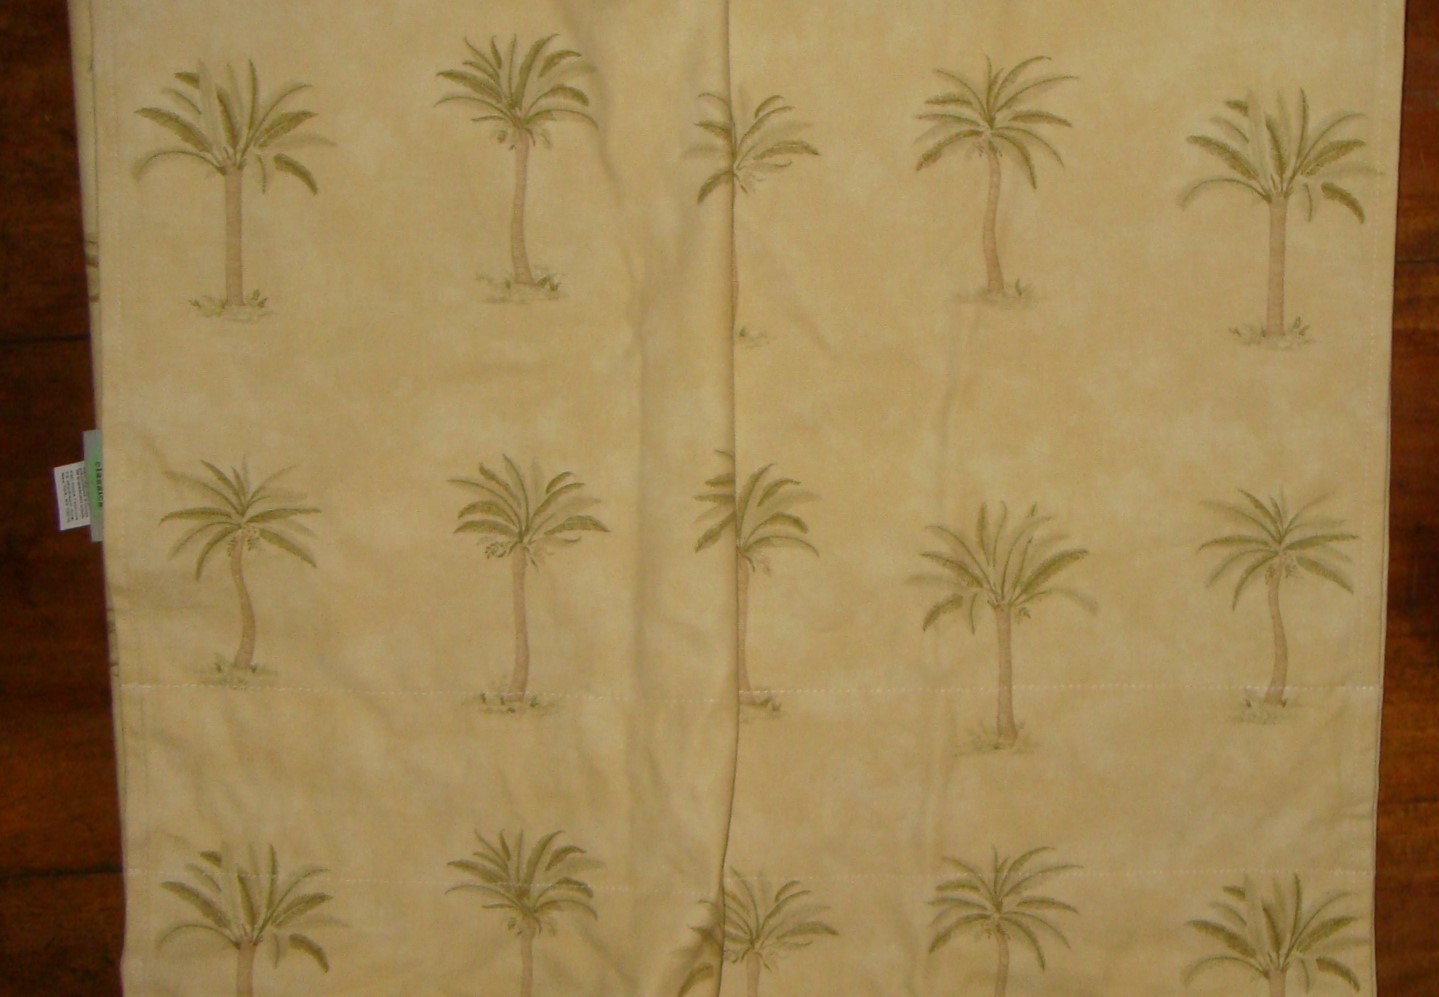 Waverly Tahiti Palm Trees Window Treatment Valance Classics Yellow Green Curtains Drapes